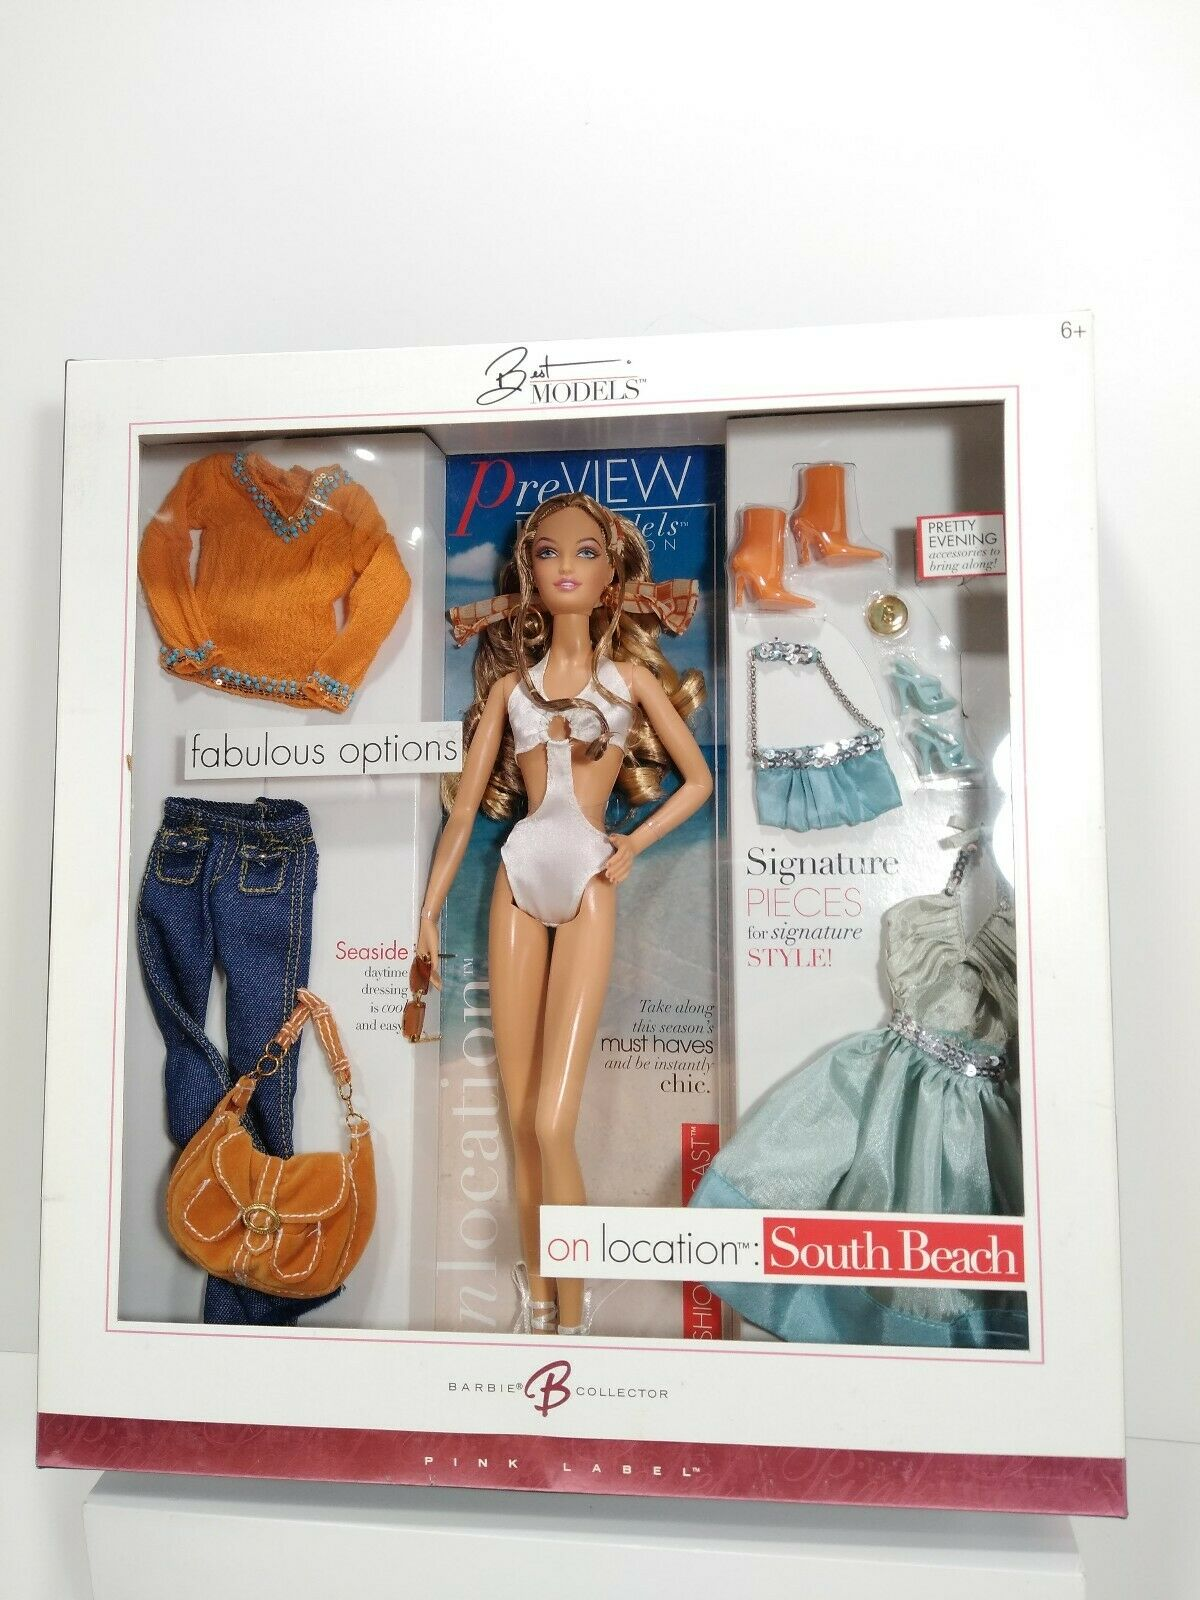 2005 South Beach Barbie Doll on Location Best Models Gift Set Model Muse